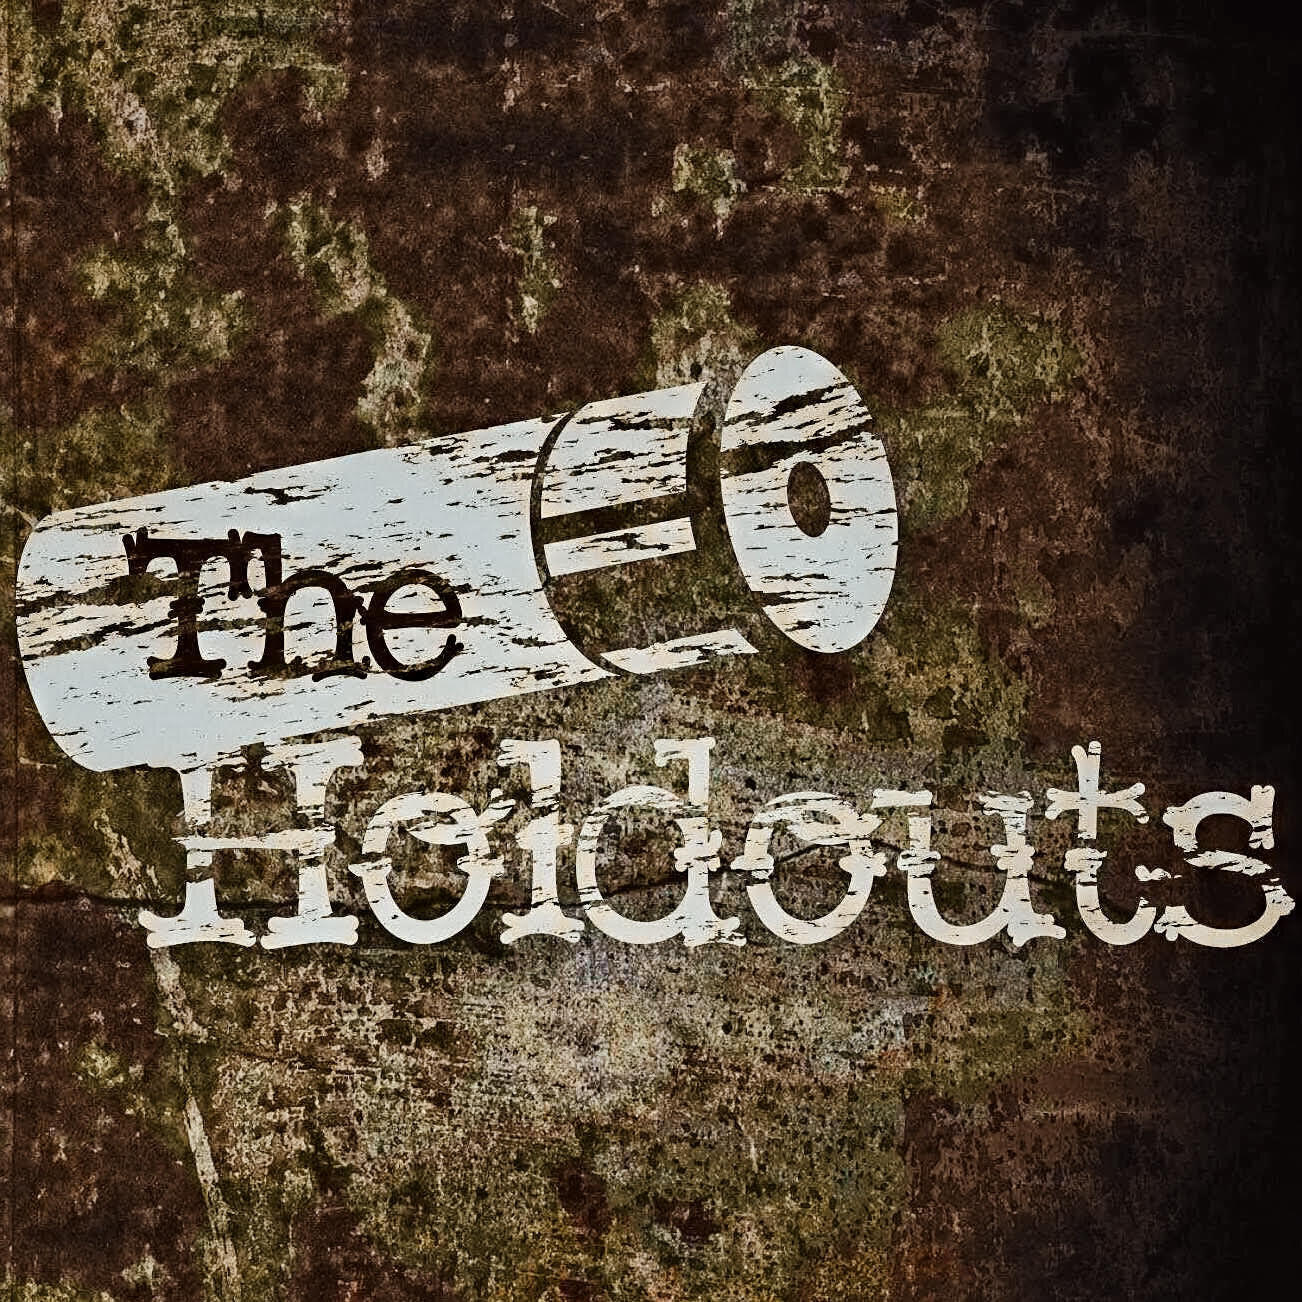 """The Holdouts - 10:45AM  The Holdouts are an Outlaw Country/Southern Rock/Blues group formed around the idea of putting """"Country"""" back into Country Music. They use a raw and gritty sound mixed with beautiful harmonies and melodic choruses to convey their message."""